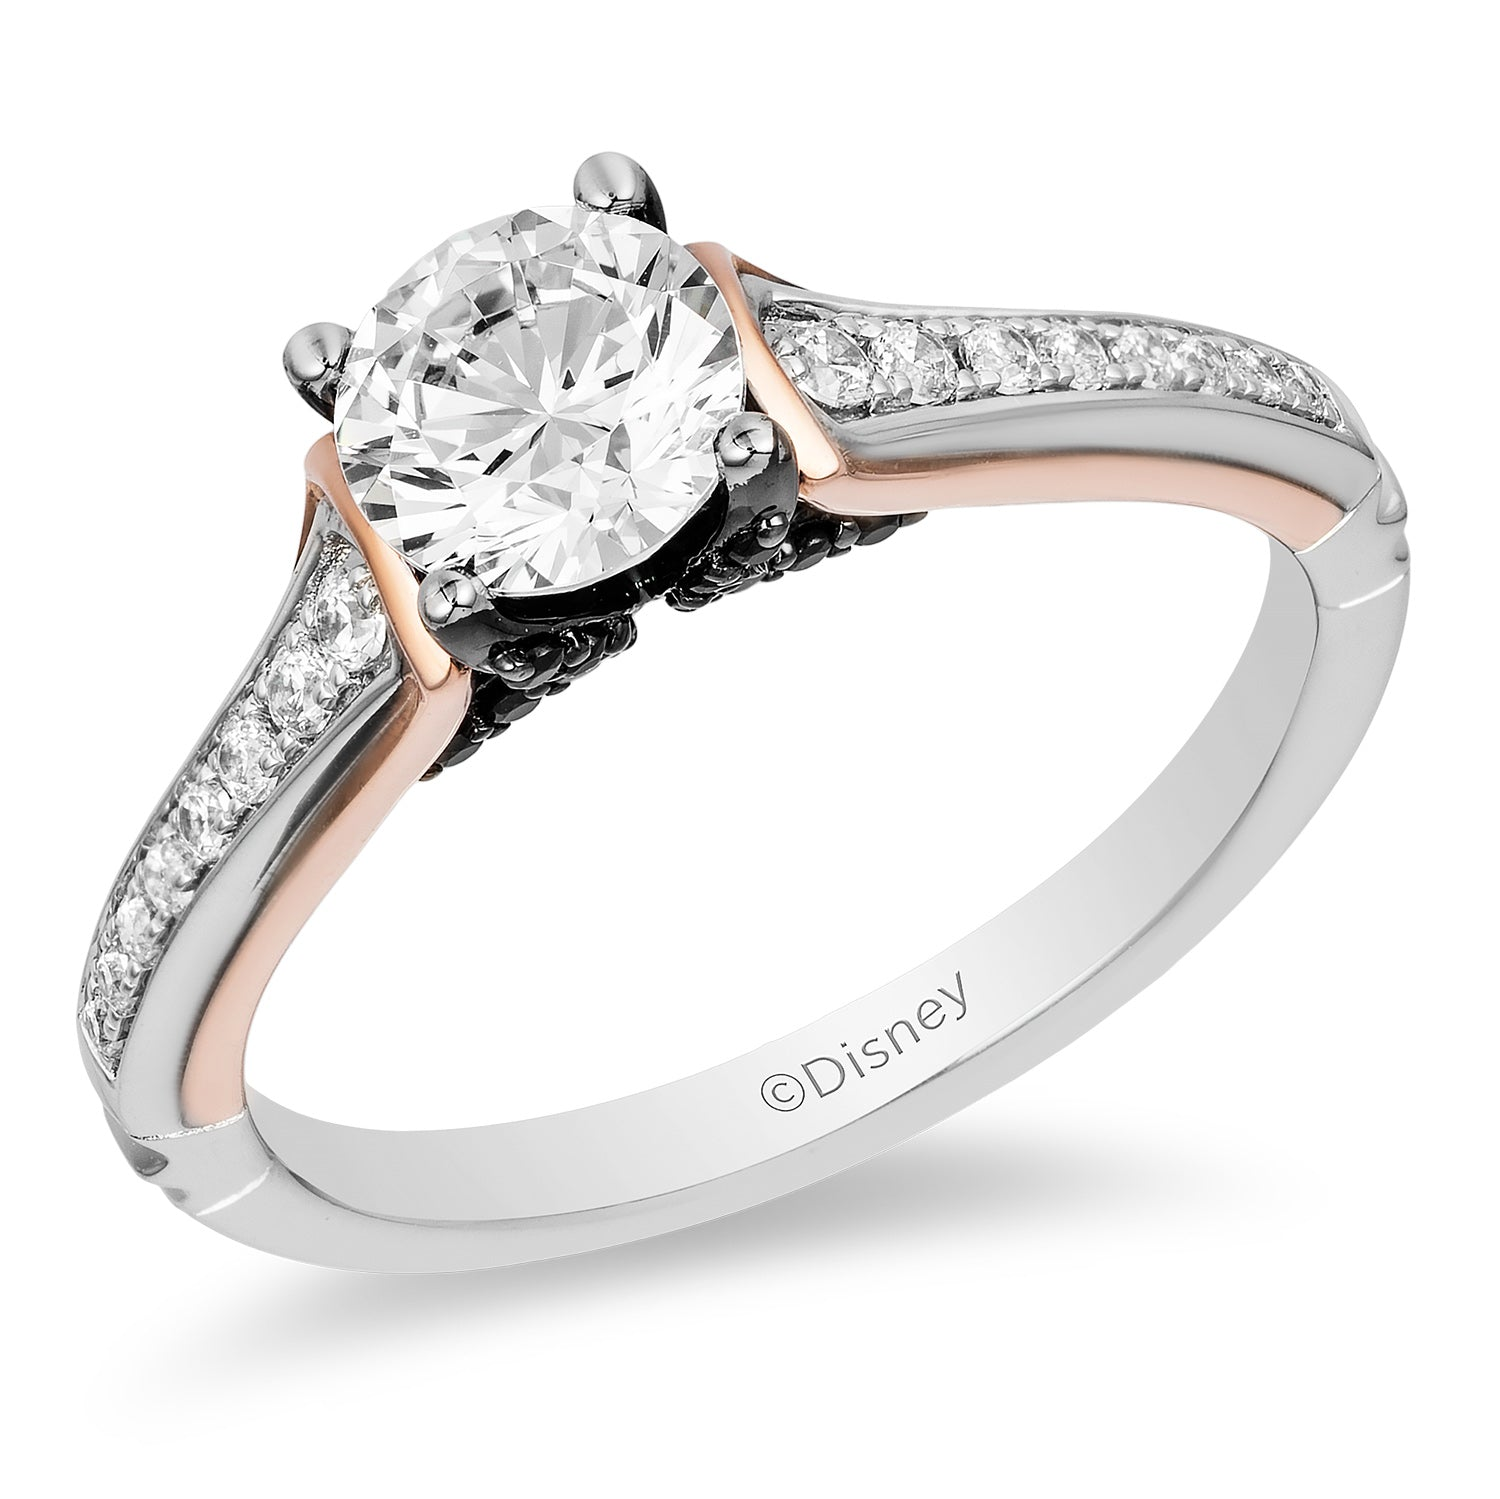 enchanted_disney-maleficent_bridal_ring-14k_rose_and_white_gold_1CTTW_1